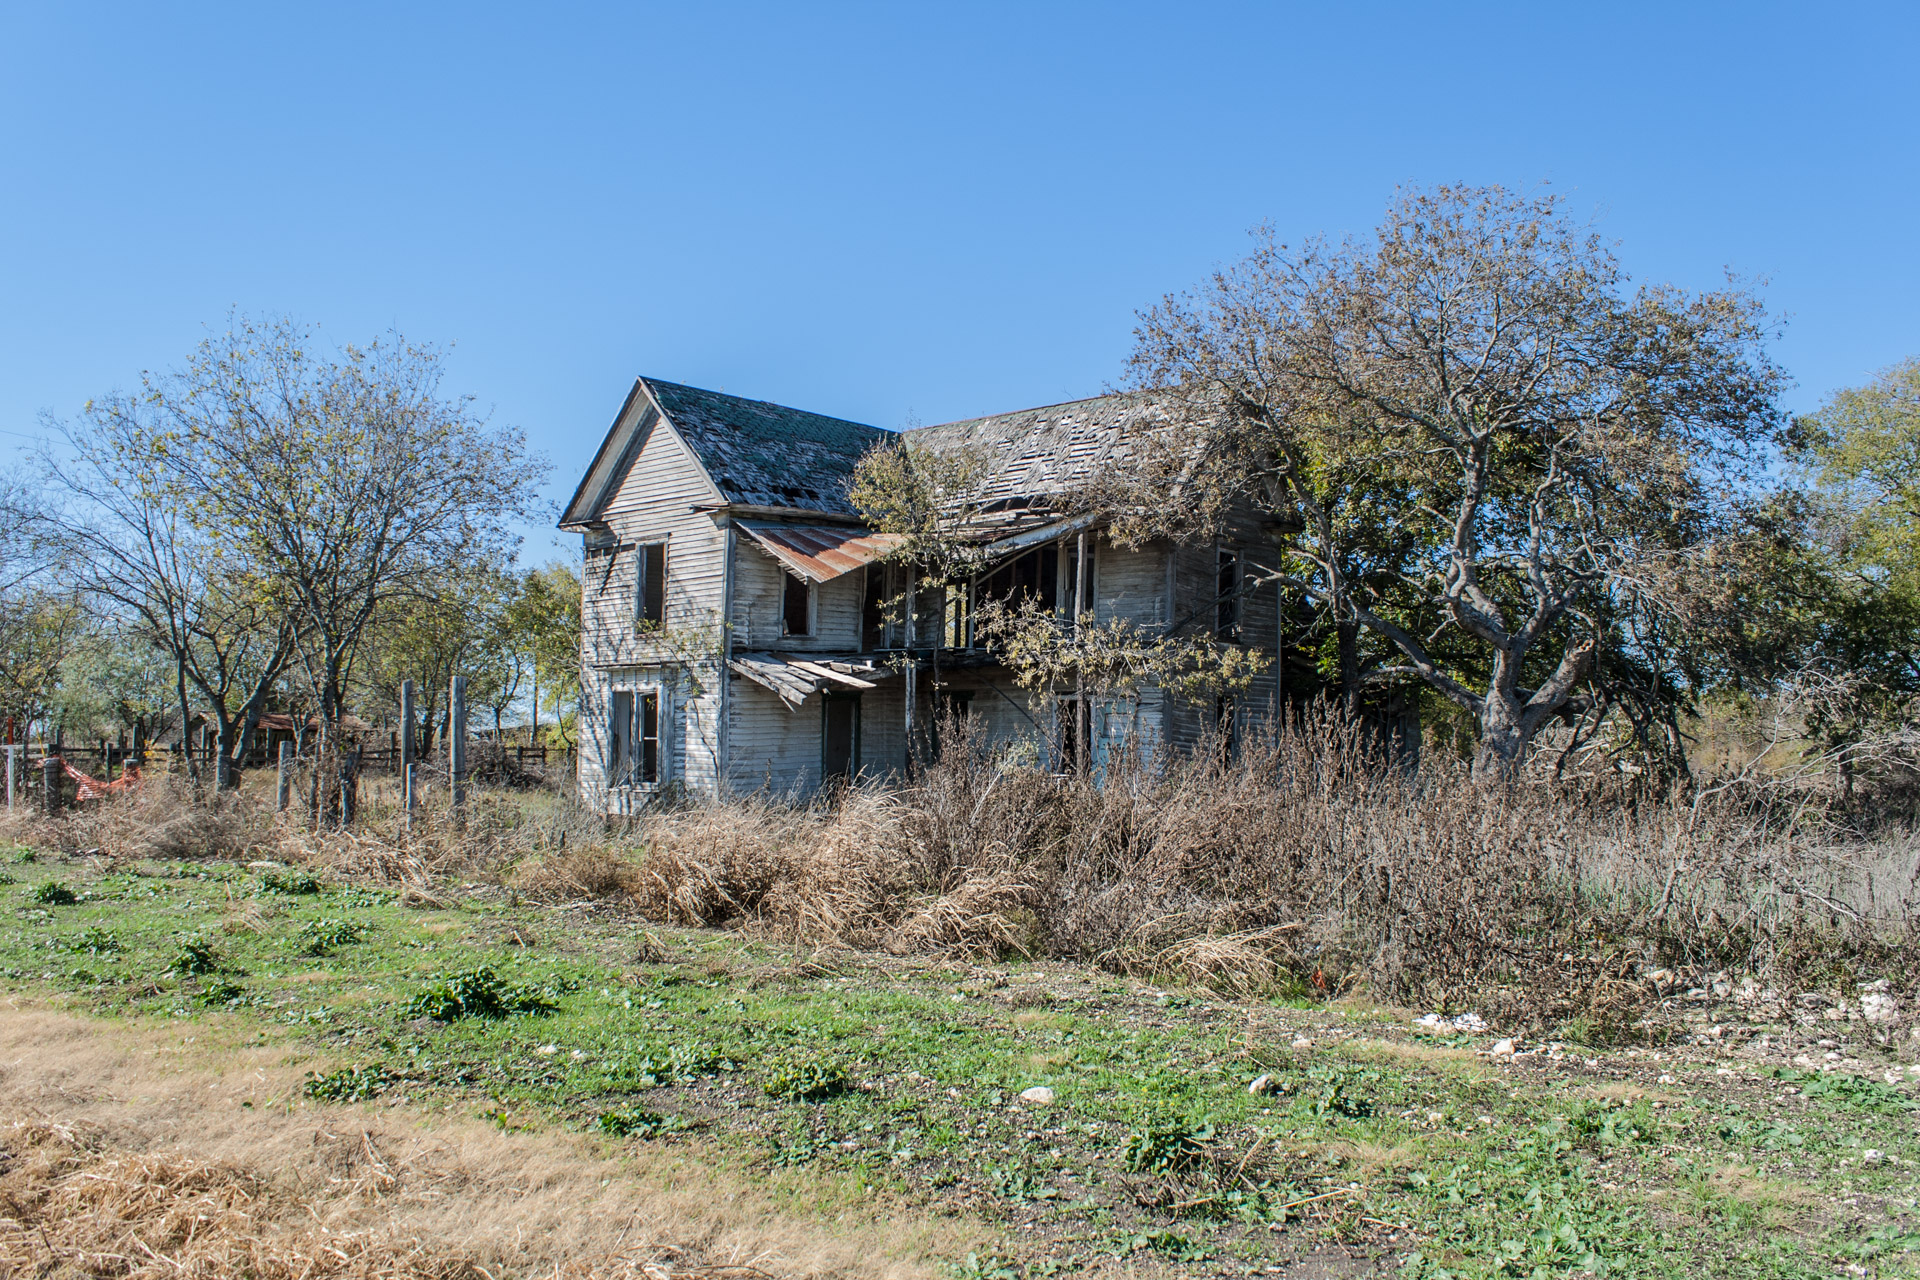 Bruceville-Eddy, Texas - Wide Open Two Story House (angle far)